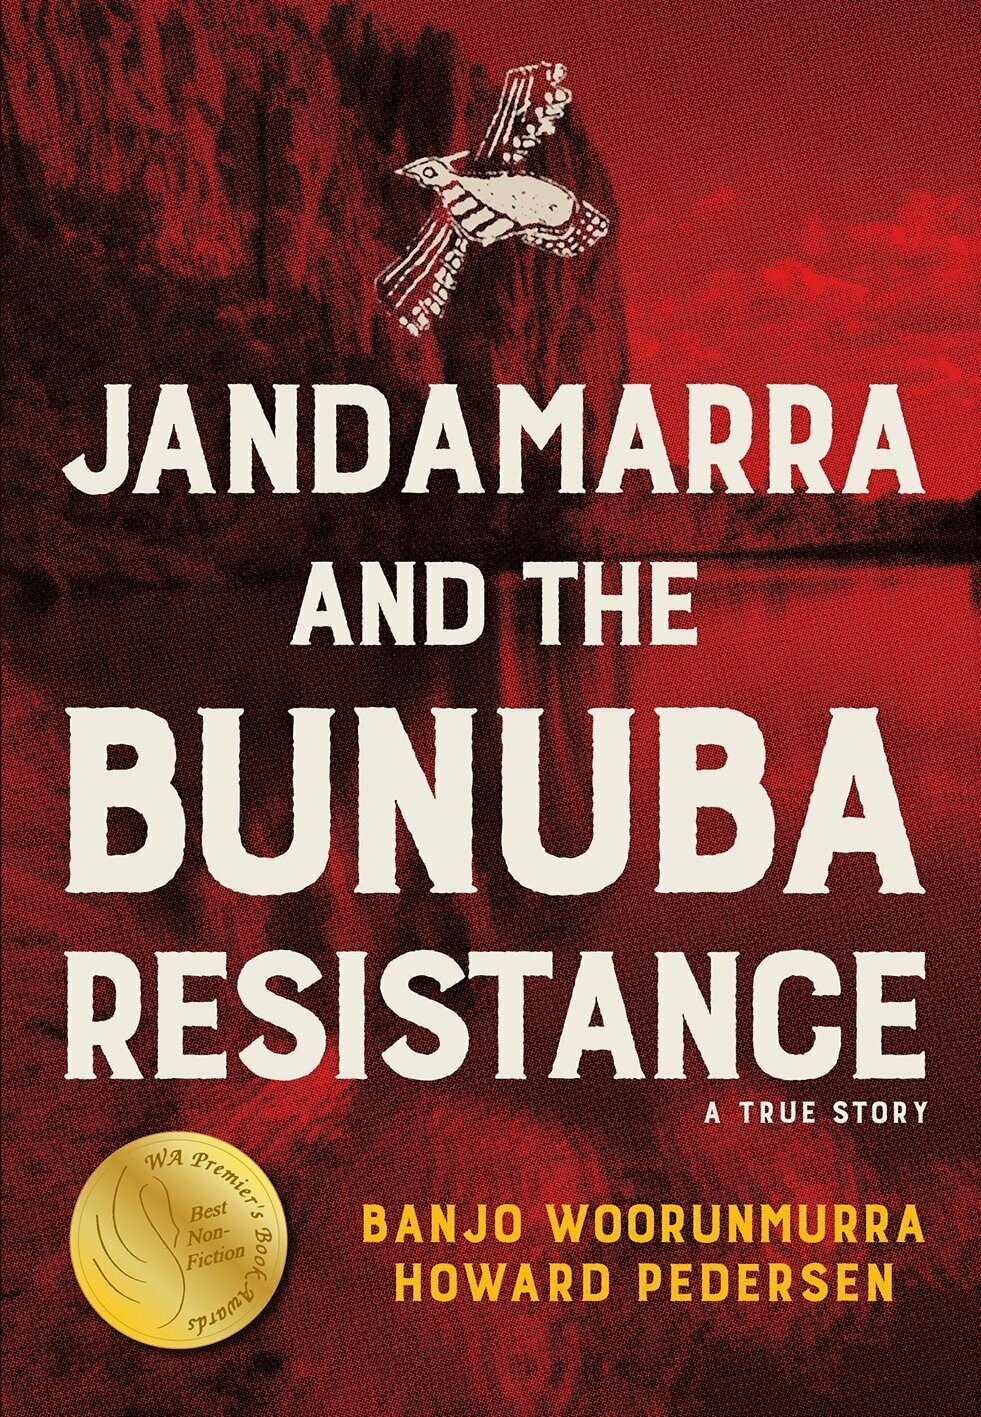 Jandamarra and the Bunuba Resistance by Banjo Woorunmurra Howard Pedersen